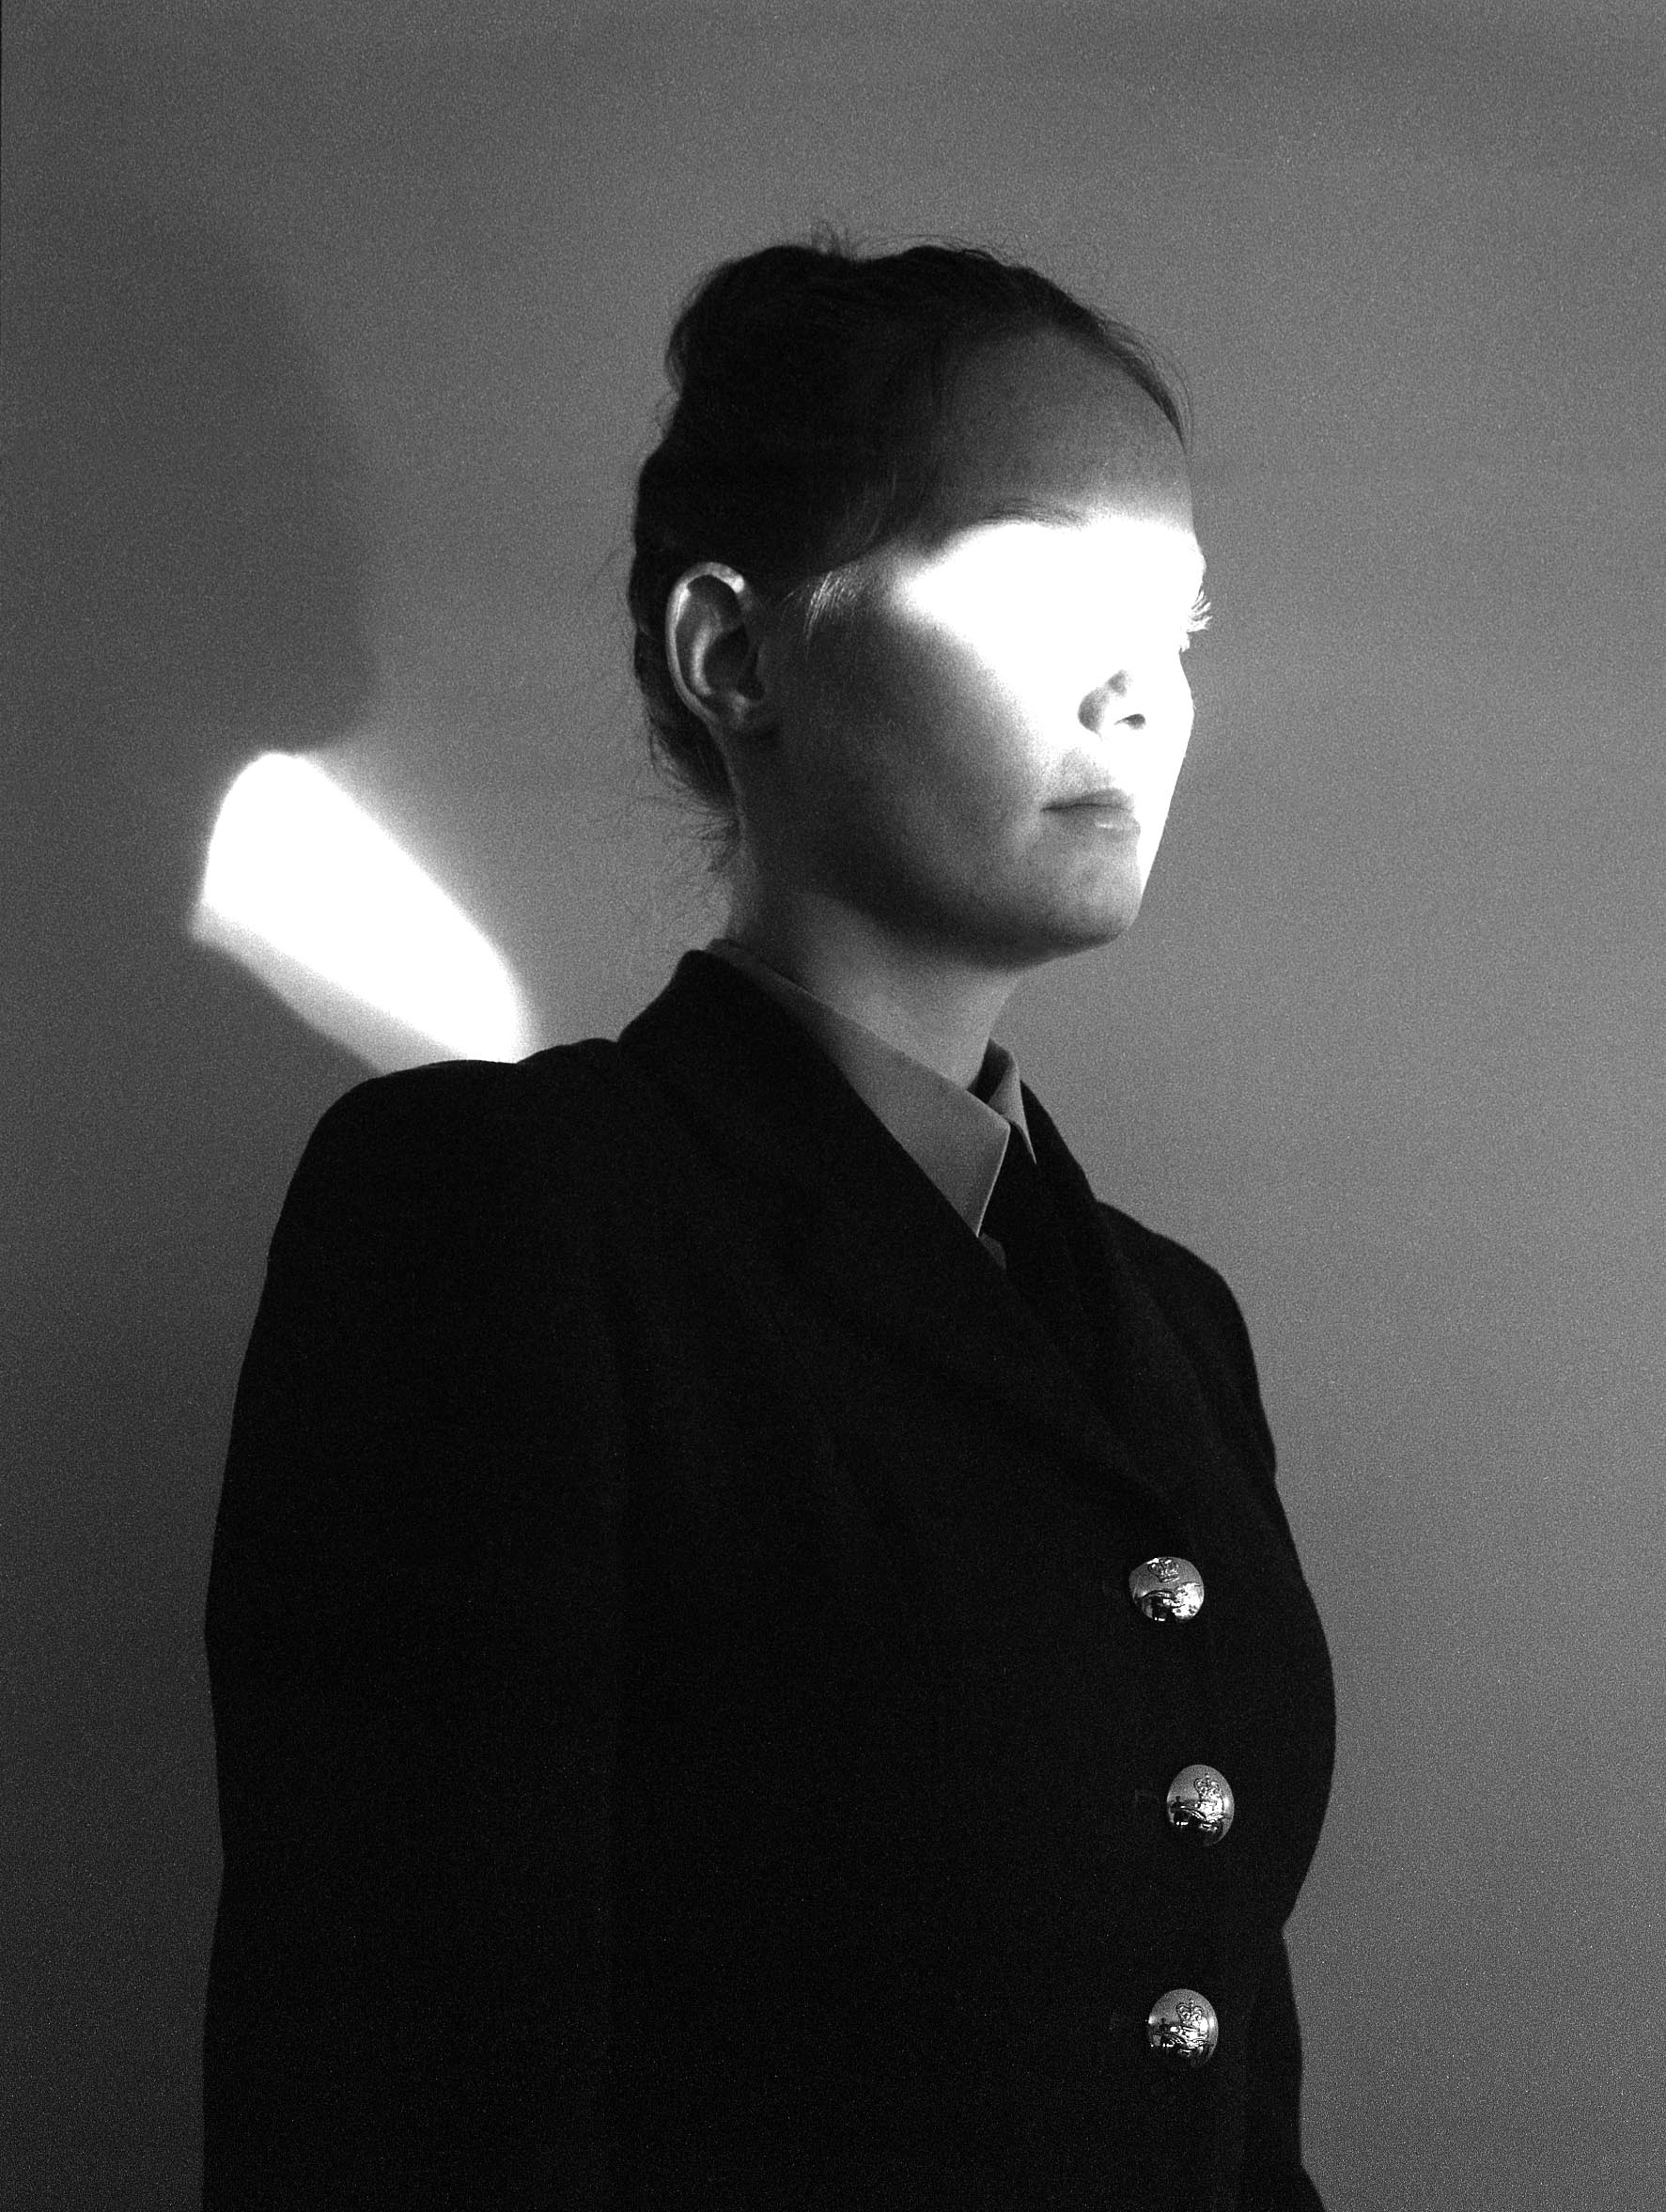 Rosie Dale - Runaways portrait of women with bright light shining on her face